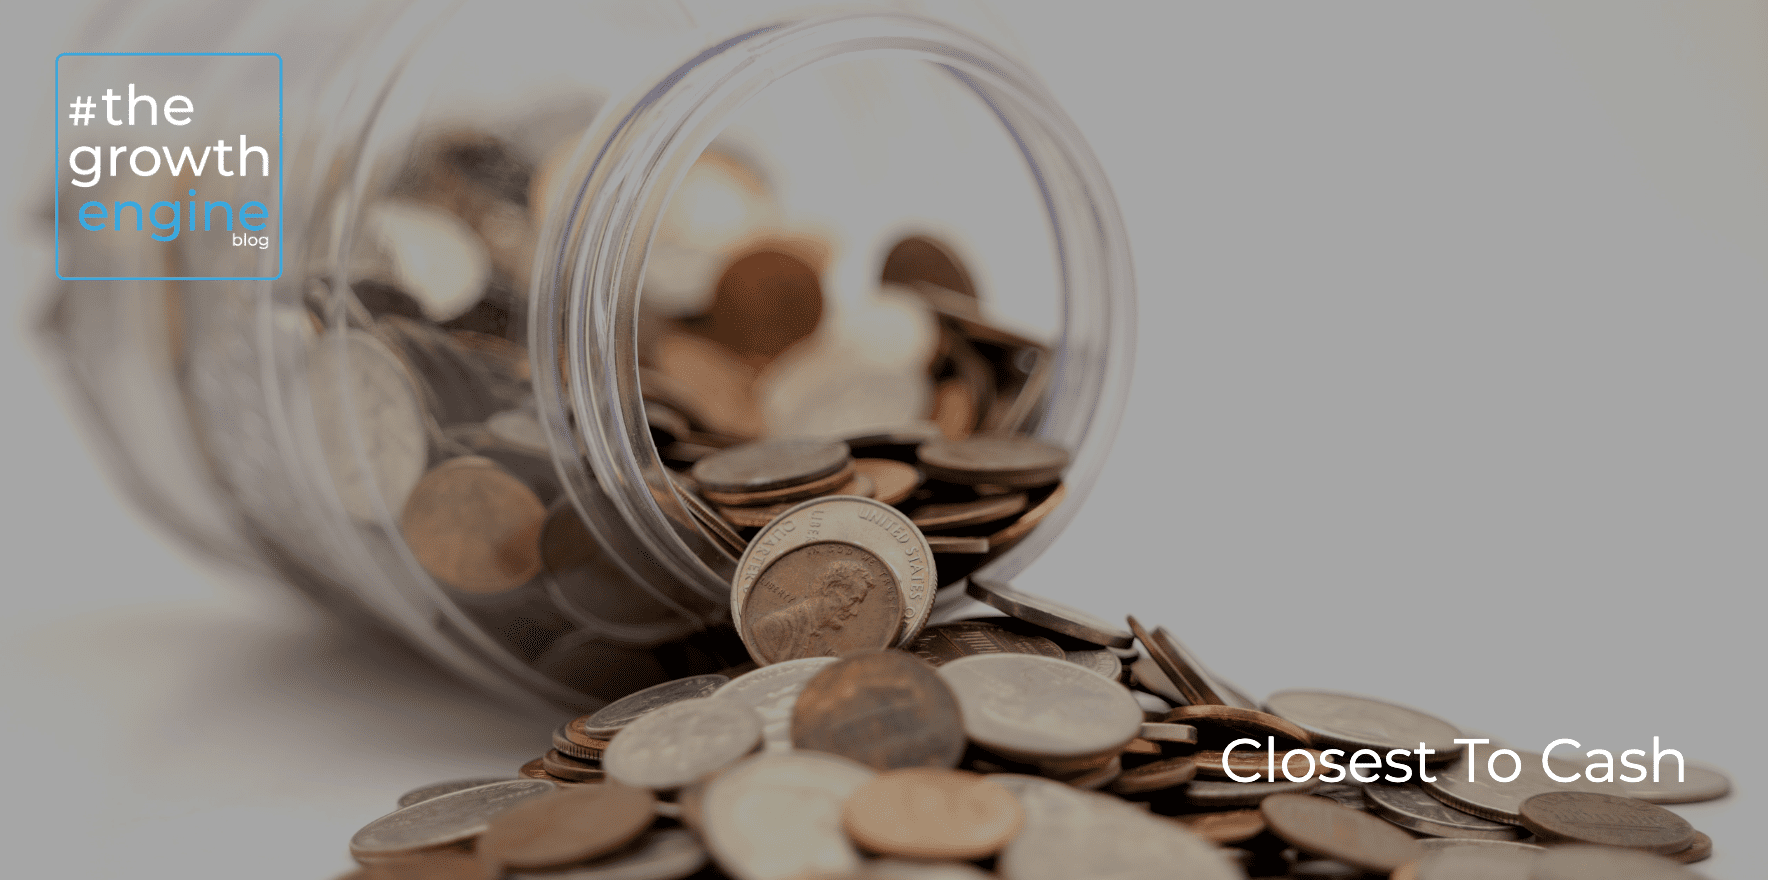 GE - Article - Closest To Cash - Blog Header